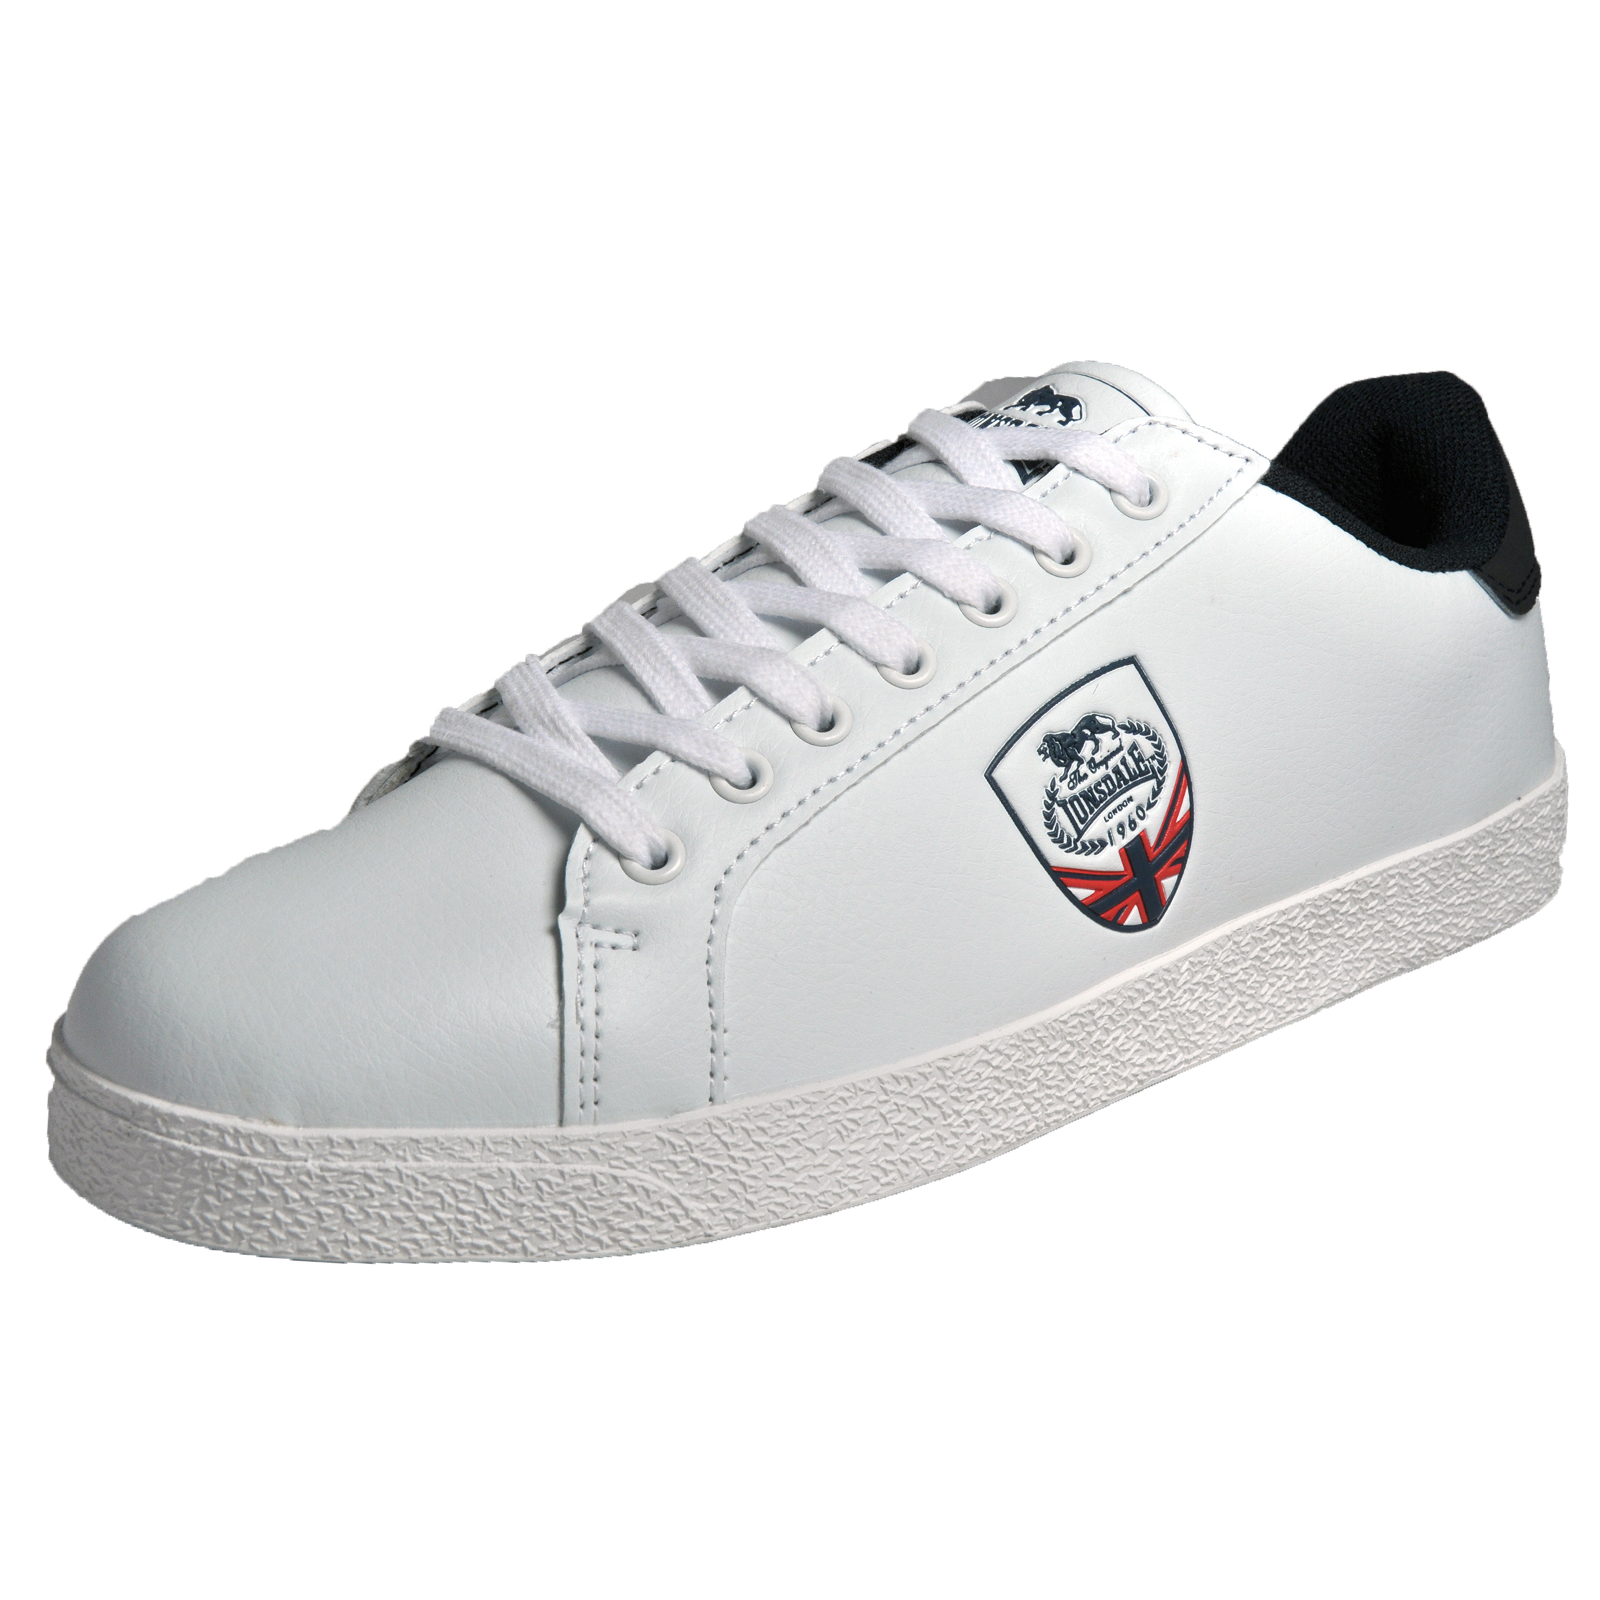 Lonsdale Chaussures Lowton Lonsdale SxUIKy44fs